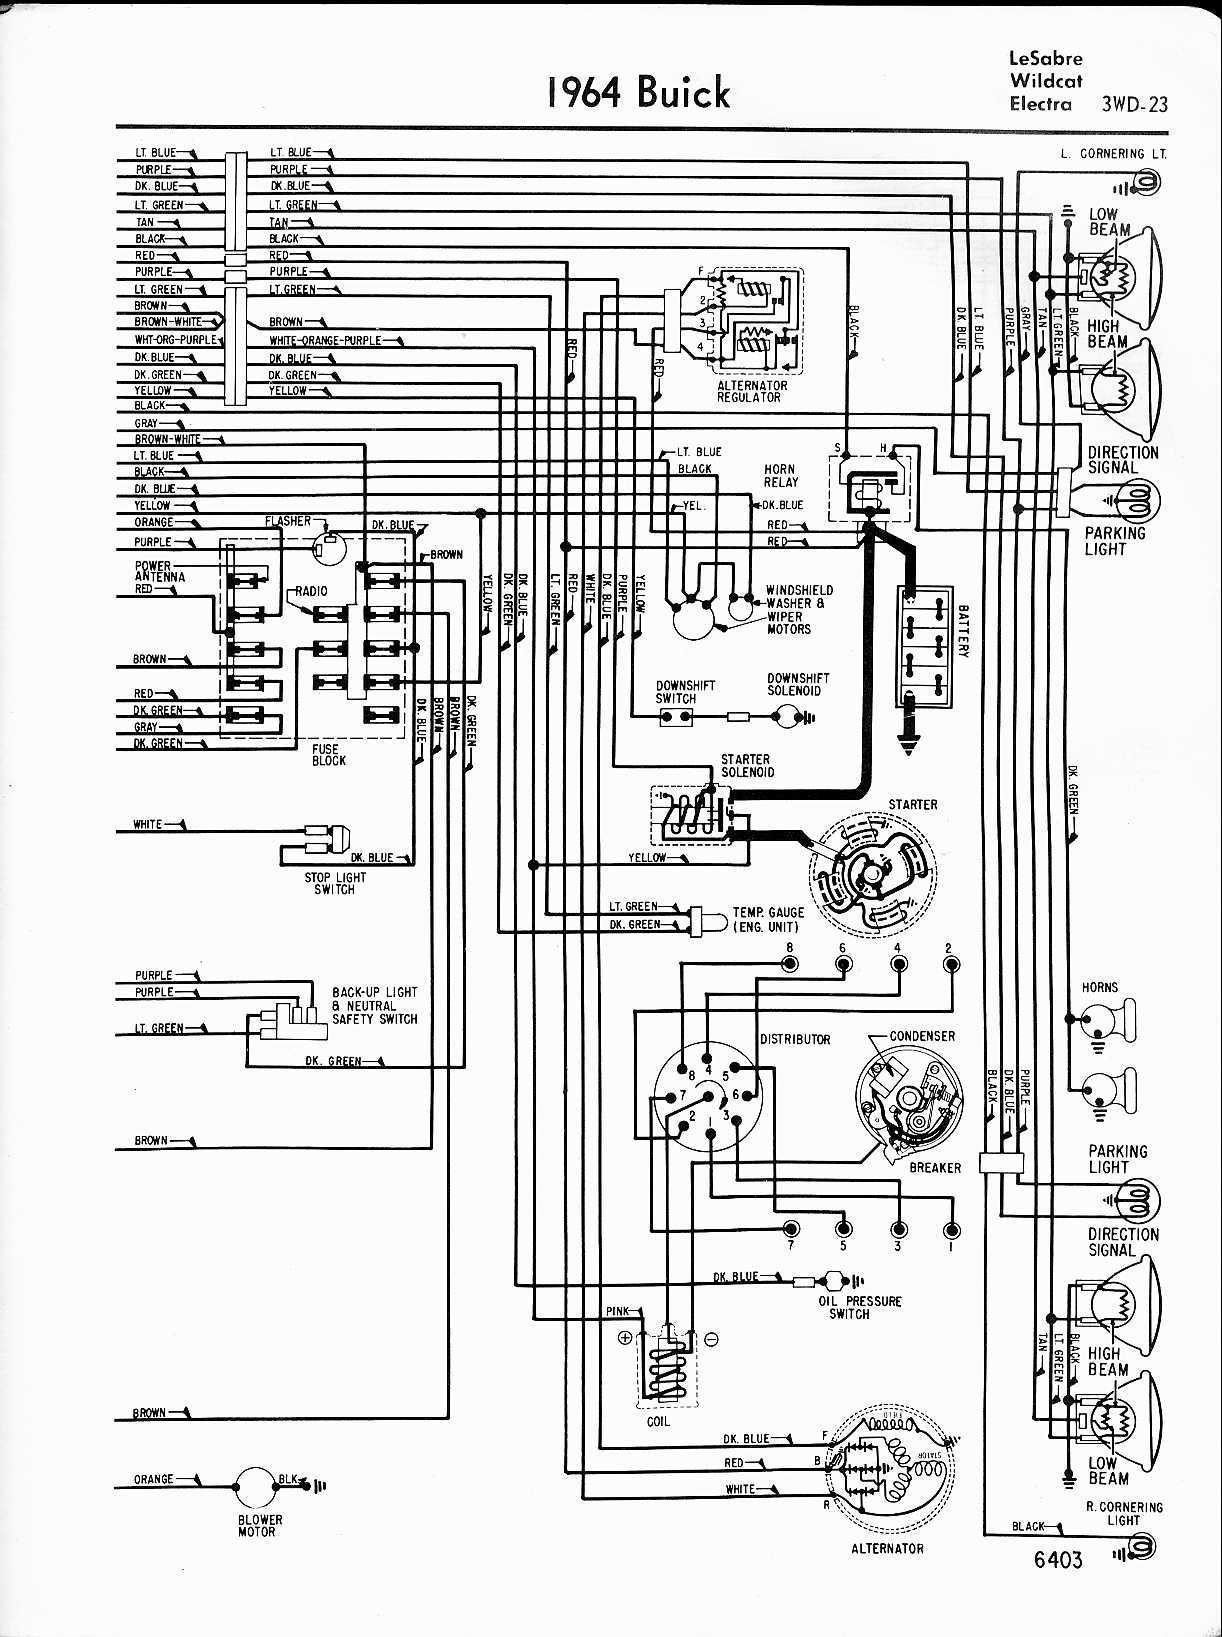 2007 Buick Lucerne Engine Diagram 2007 Buick Lucerne Wiring Diagram Seat Circuit Wiring and Diagram Of 2007 Buick Lucerne Engine Diagram